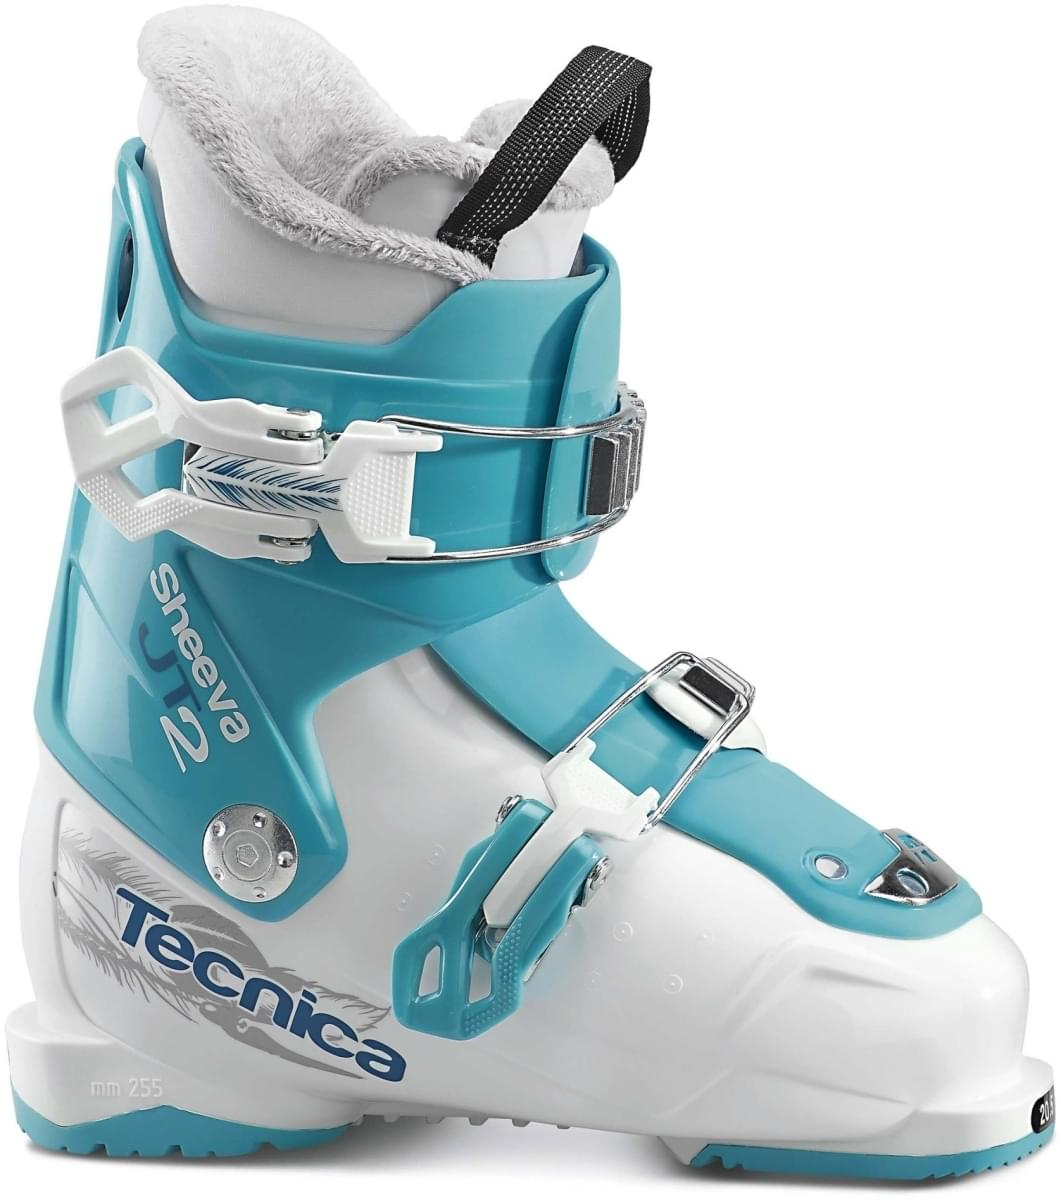 Tecnica JT 2 Sheeva - white-blue 215